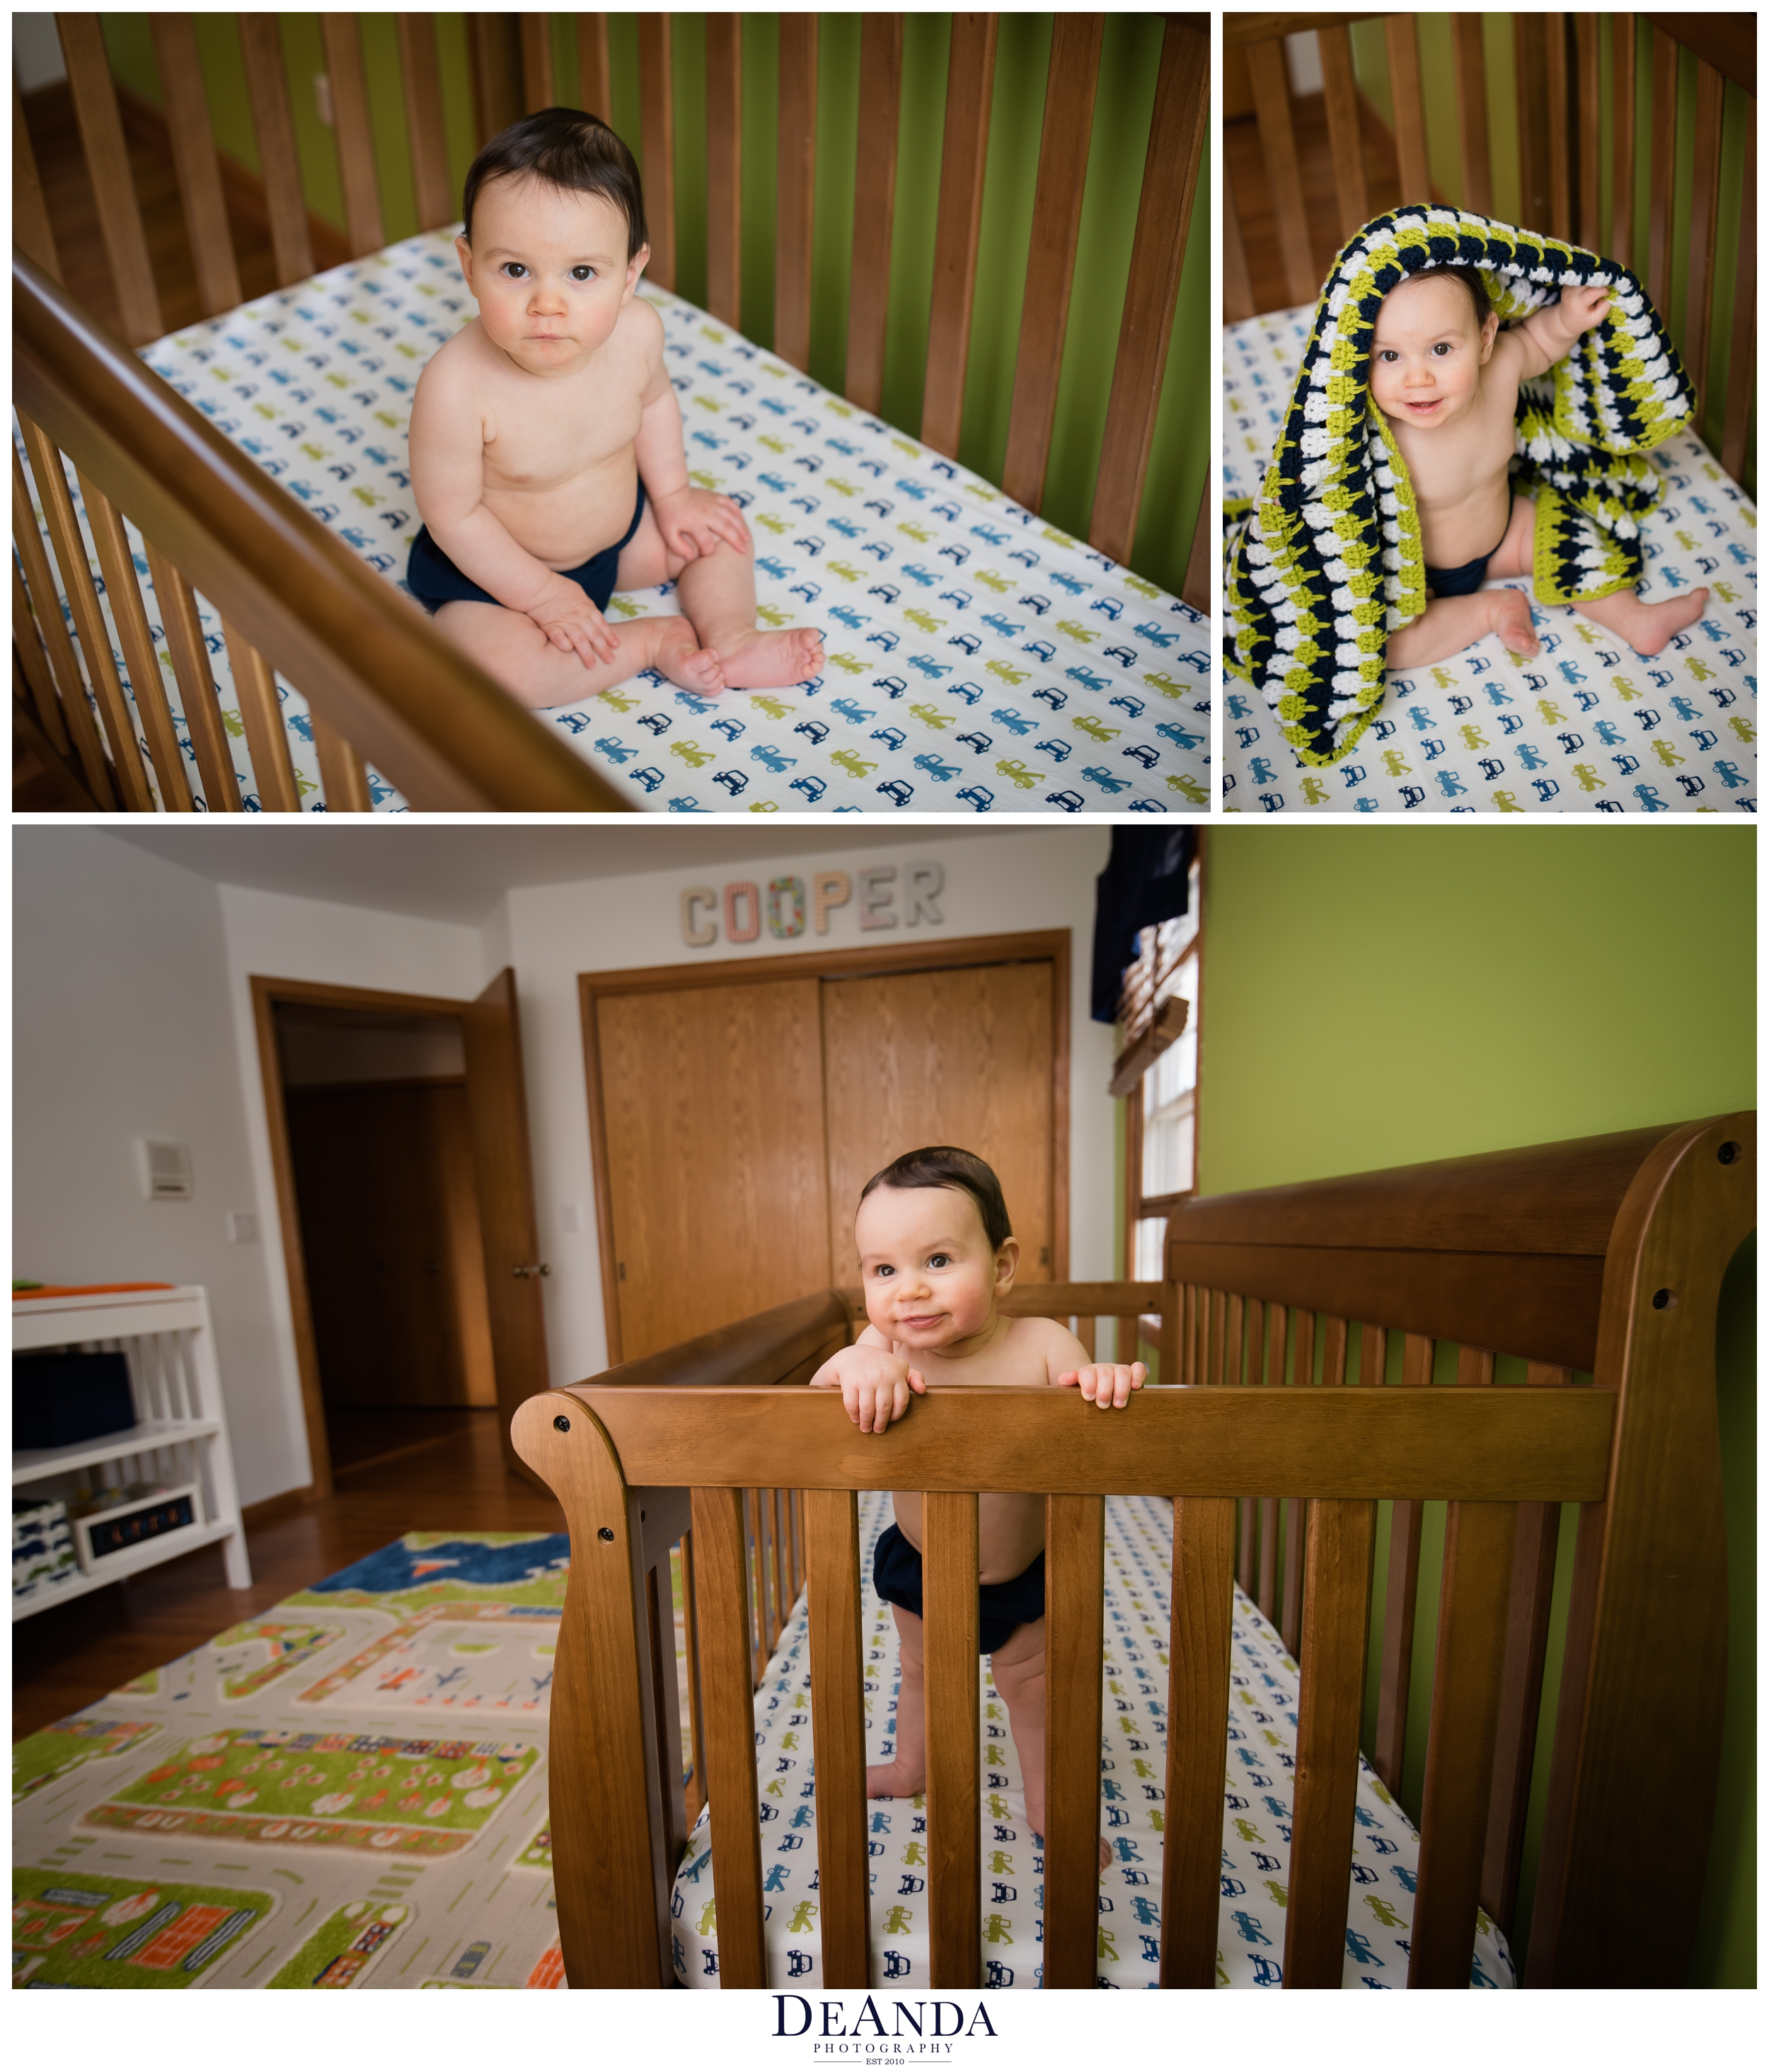 7 month old standing in crib